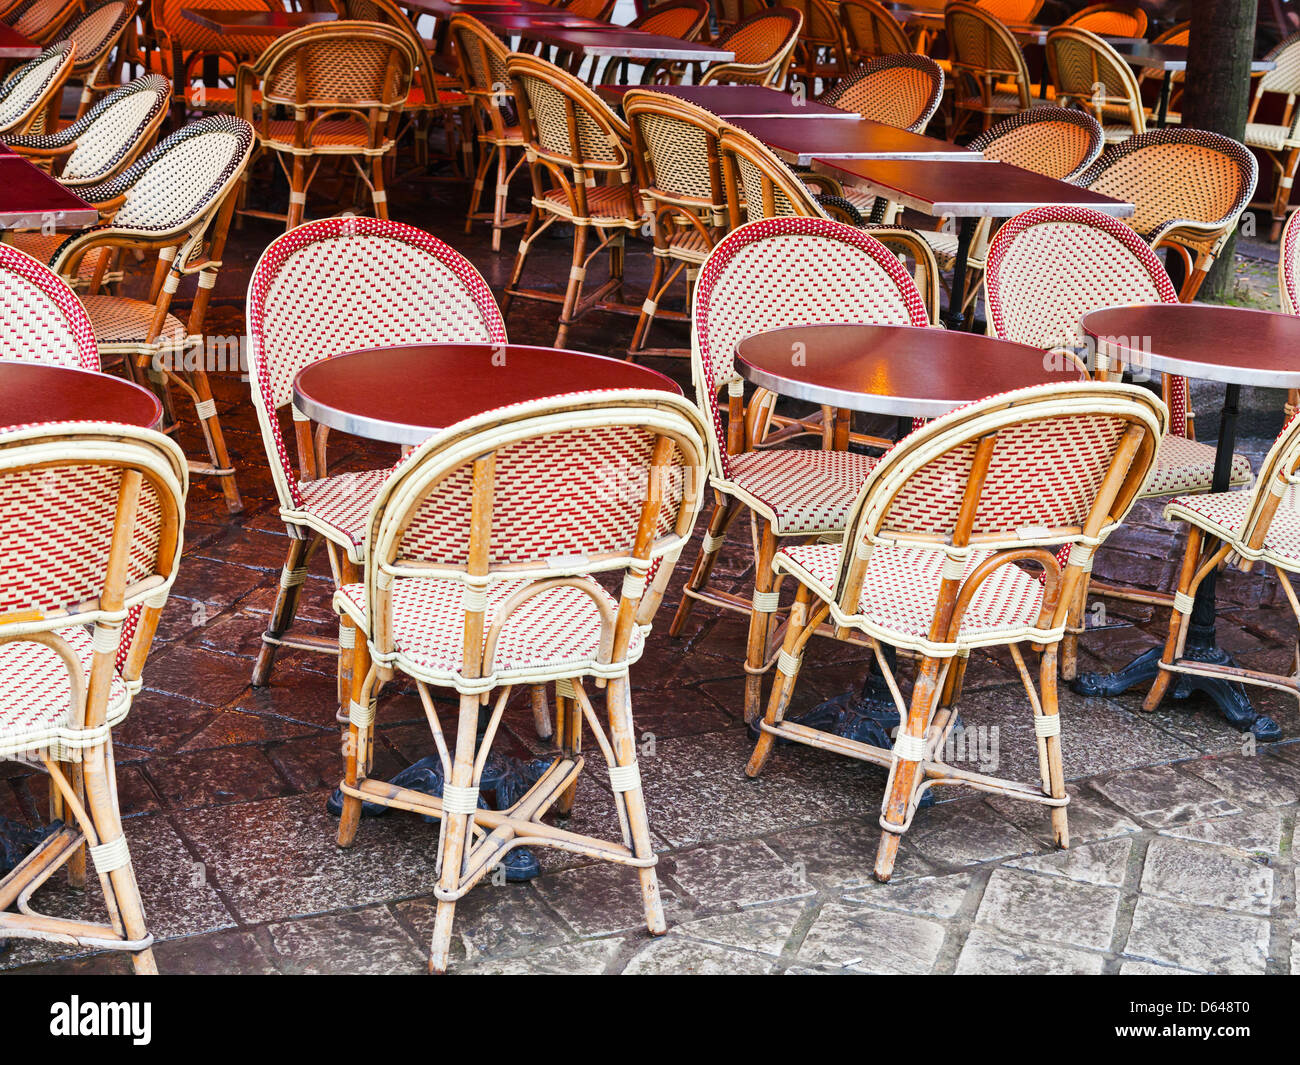 Page 2 Cane Chairs High Resolution Stock Photography And Images Alamy